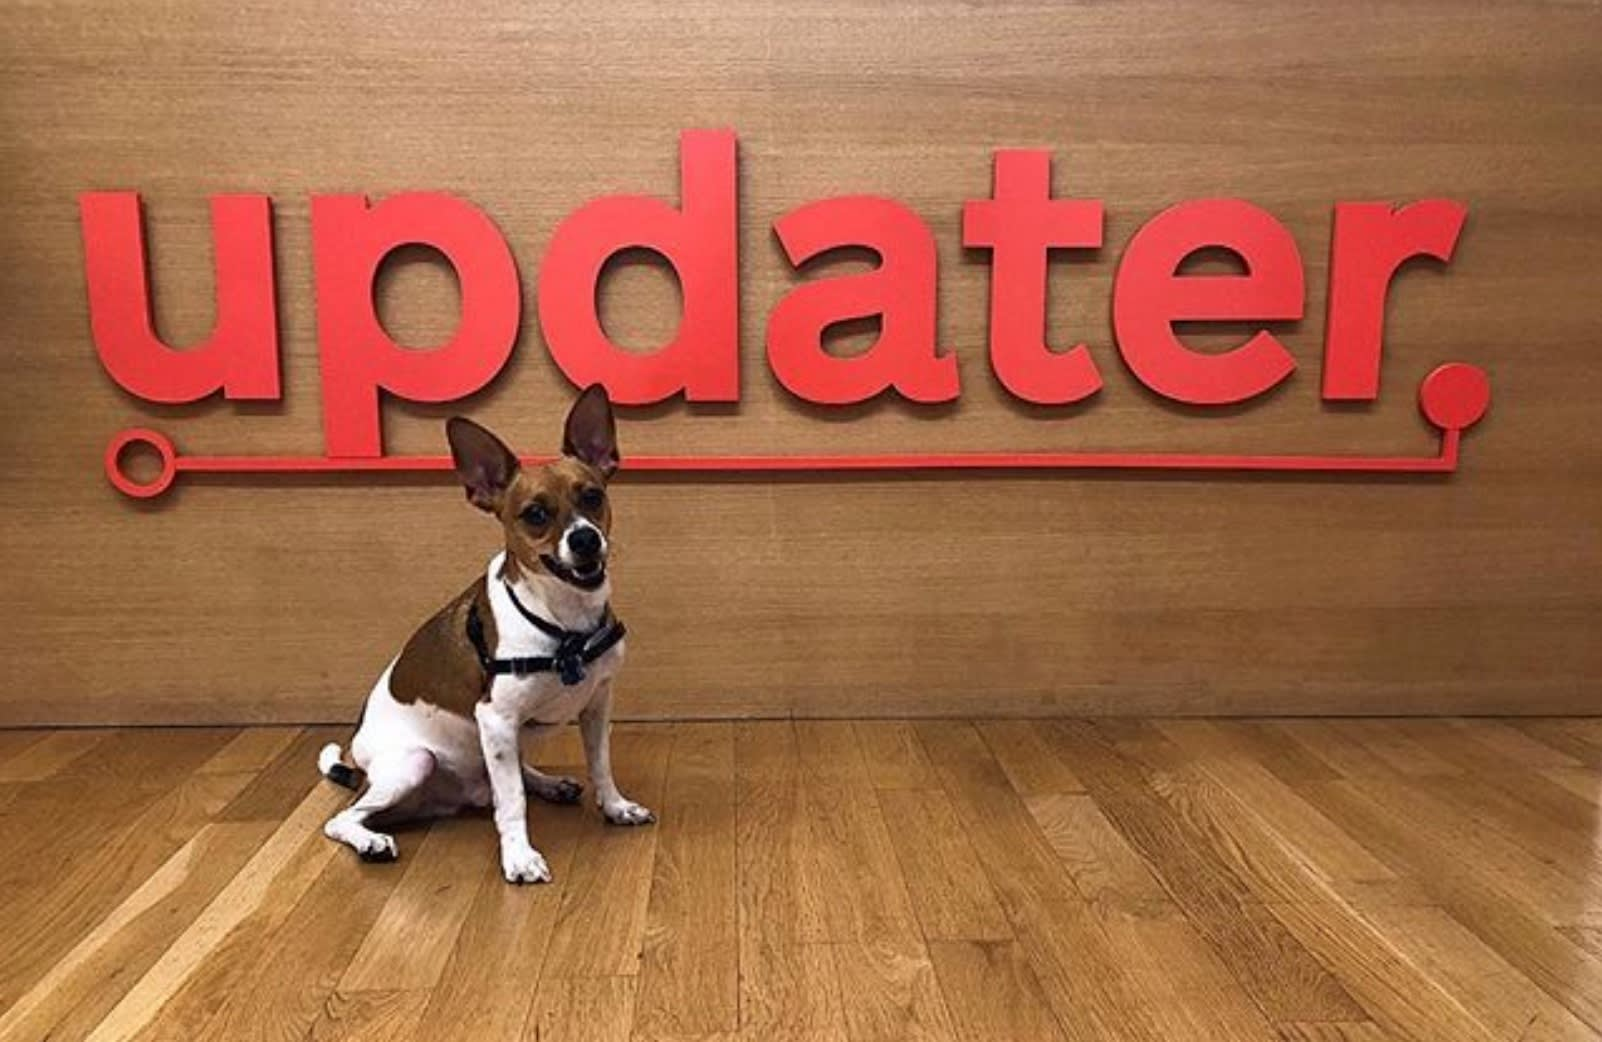 Updater Named One of the Best Dog-Friendly Companies of 2019 by Rover